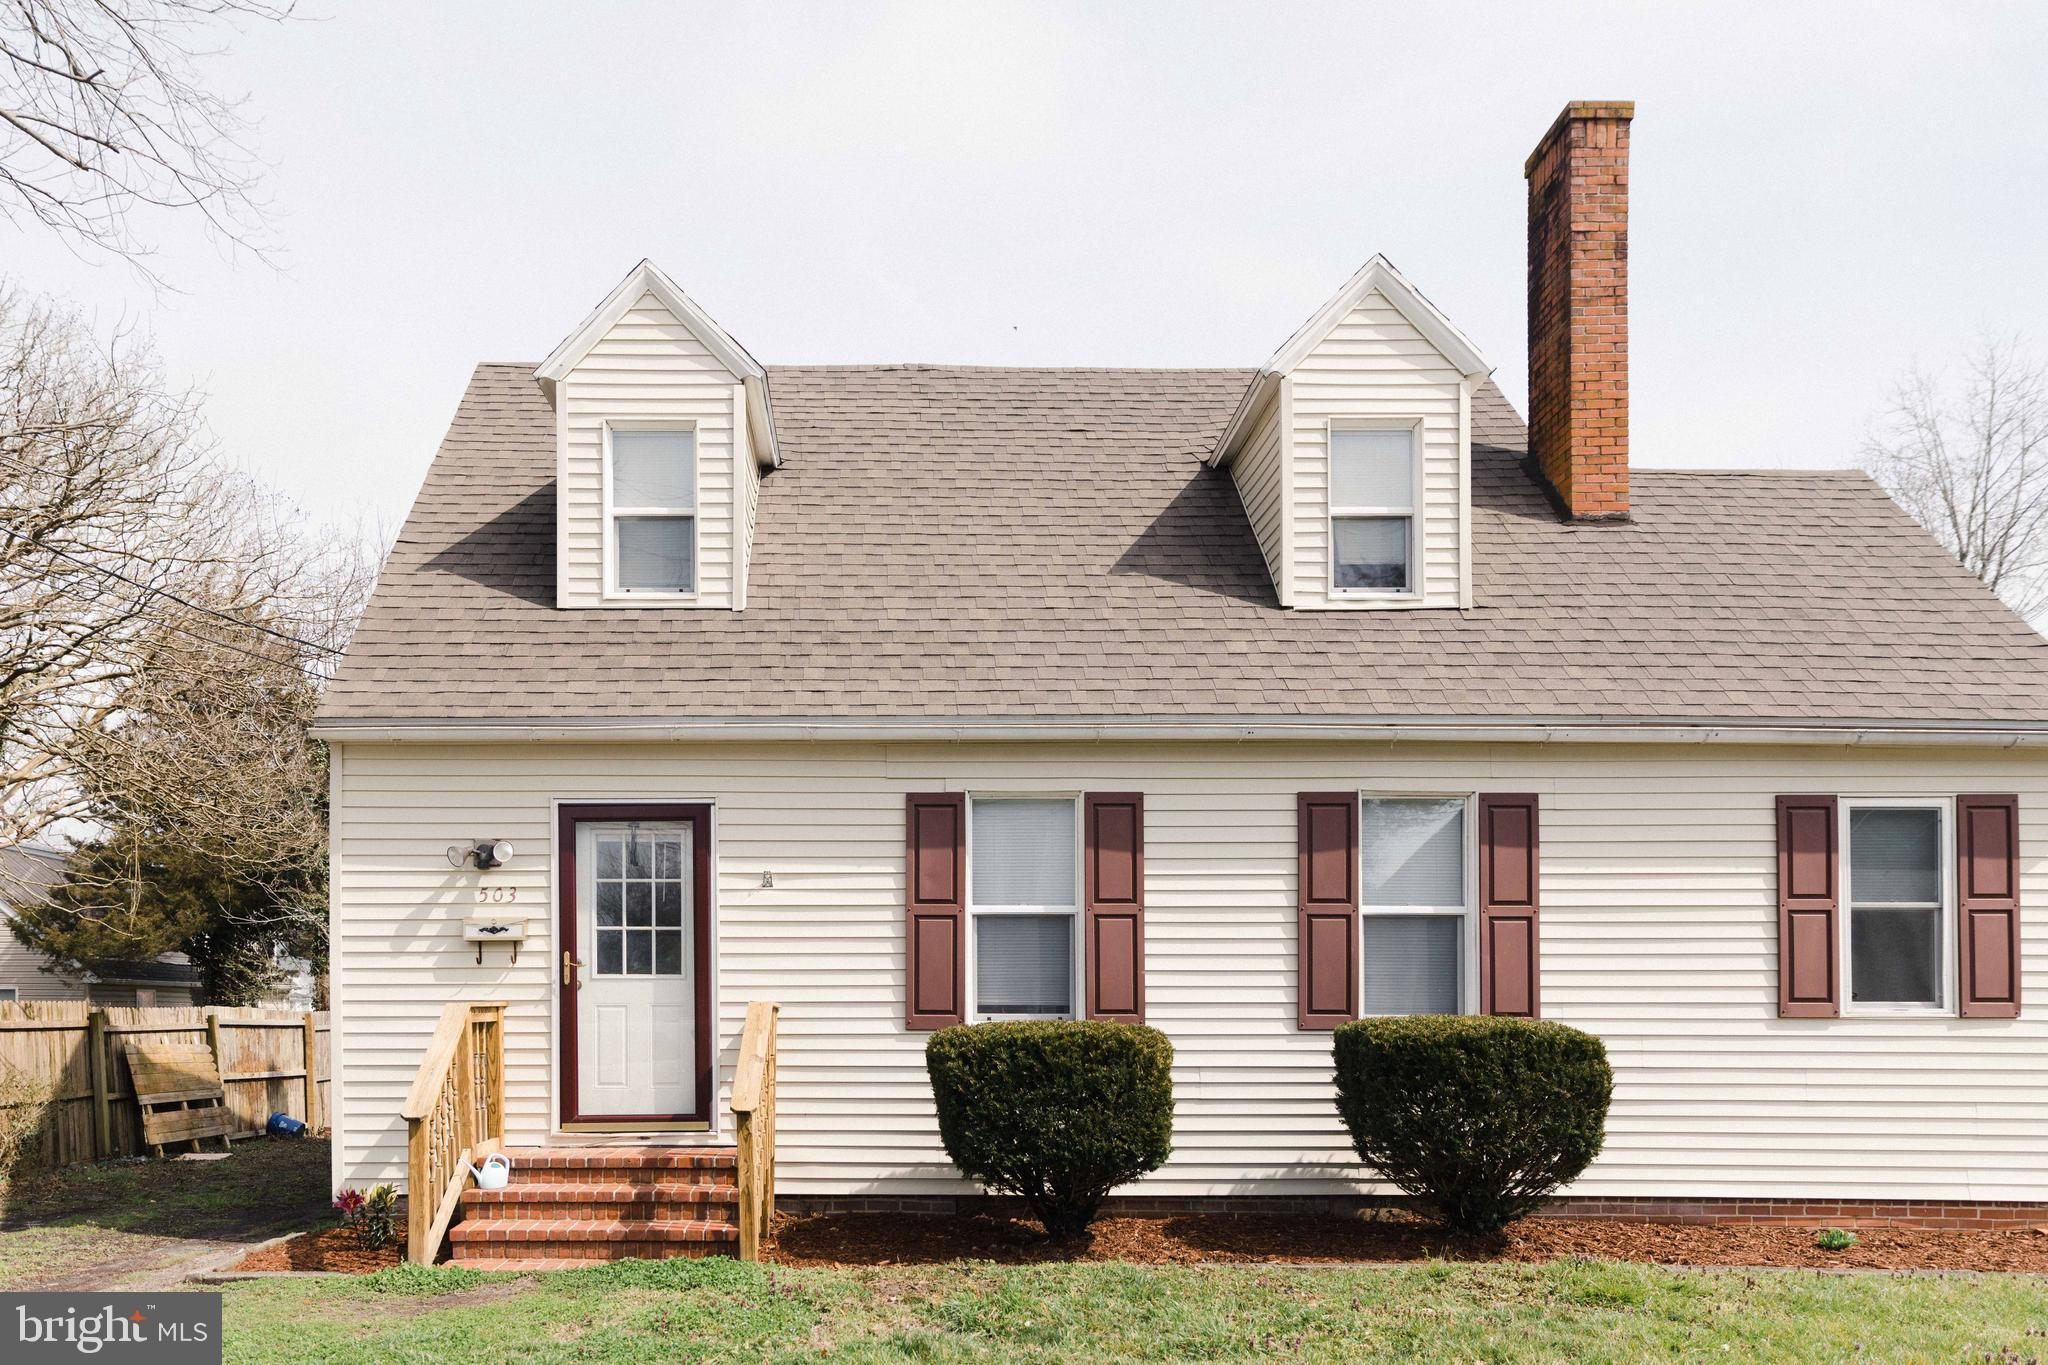 Driving down Walnut St. in Pocomoke City, and this adorable Cape-Cod (sort of) style home just stick